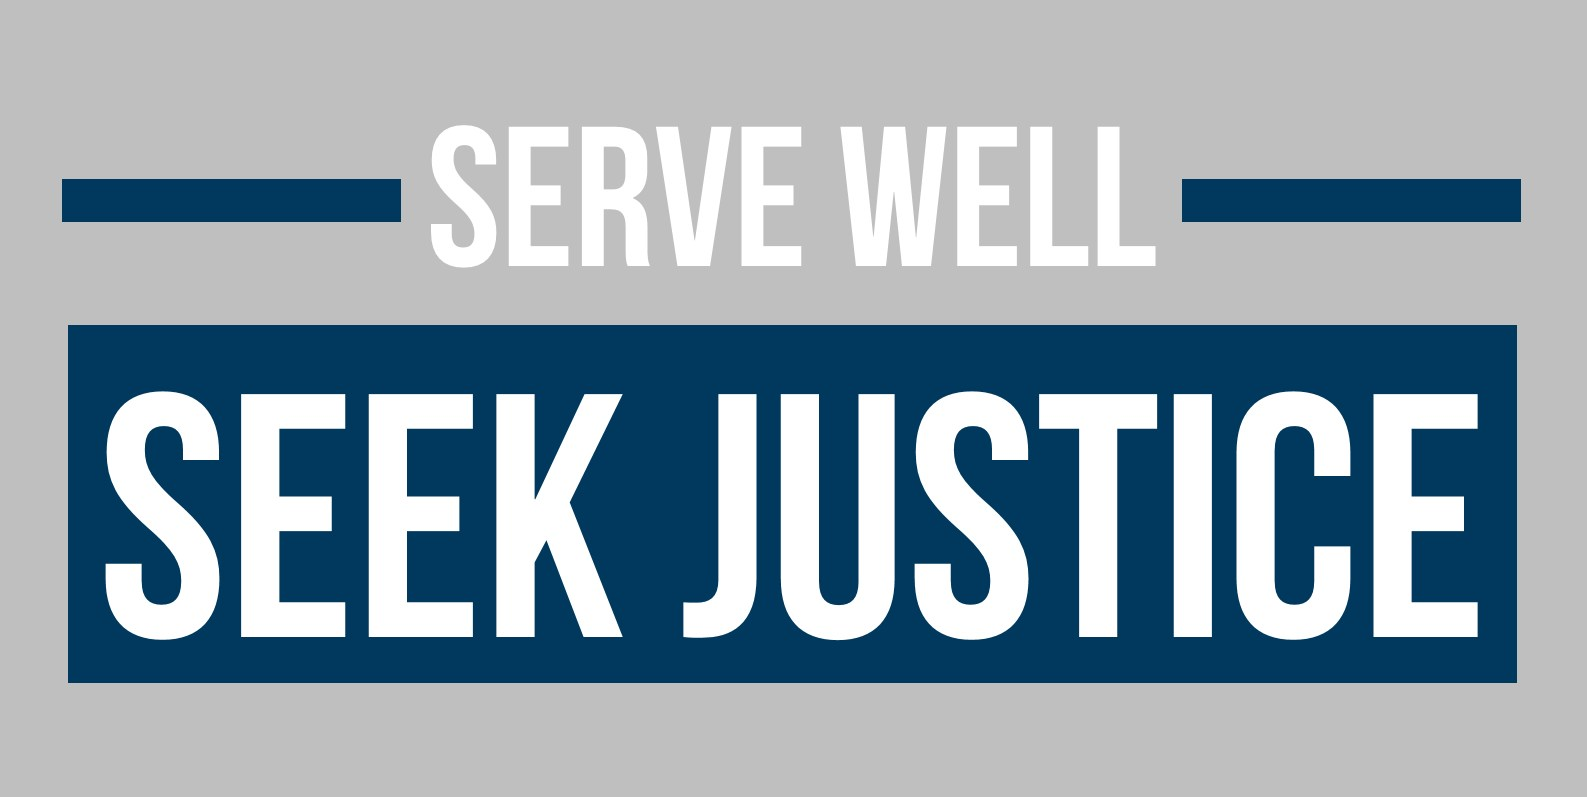 SERVE WELL  |  SEEK JUSTICE